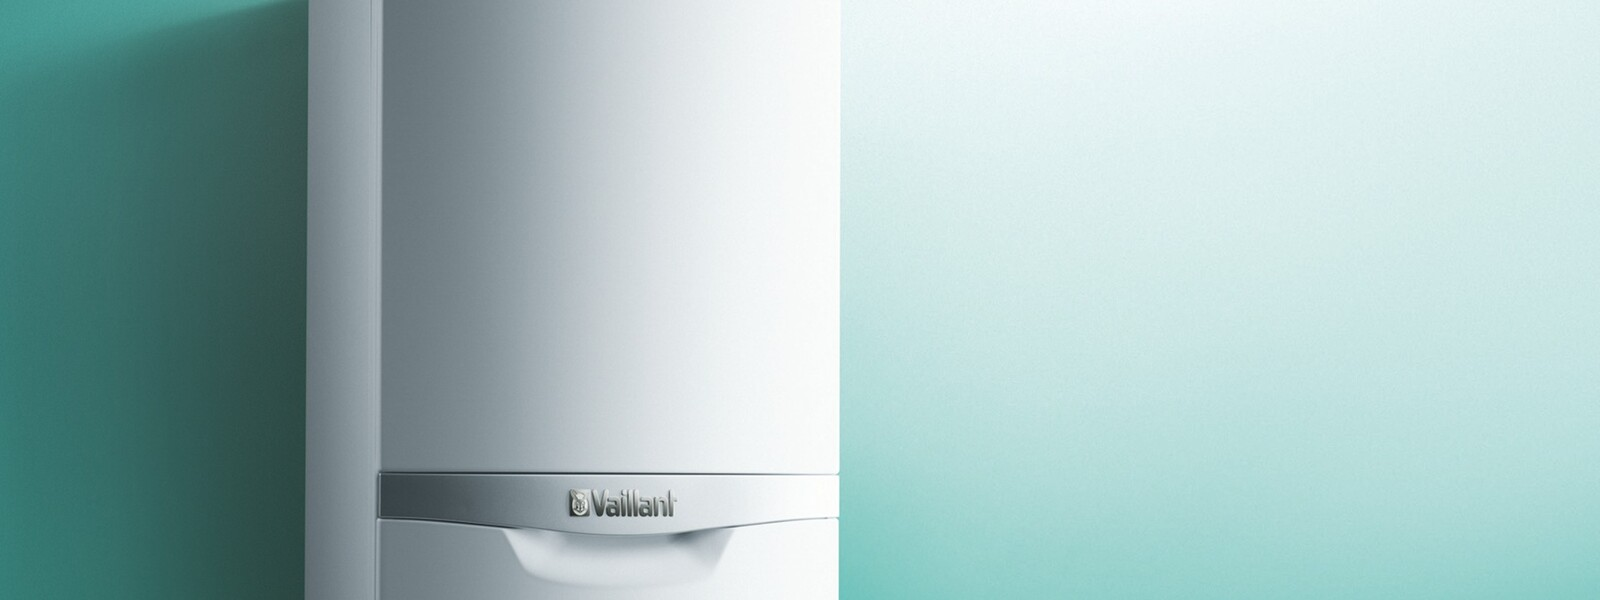 https://www.vaillant-group.com/newsroom/pressemitteilungen/2018/shk-2018/ecotec-plus/ecotec-1166434-format-24-9@1600@desktop.jpg